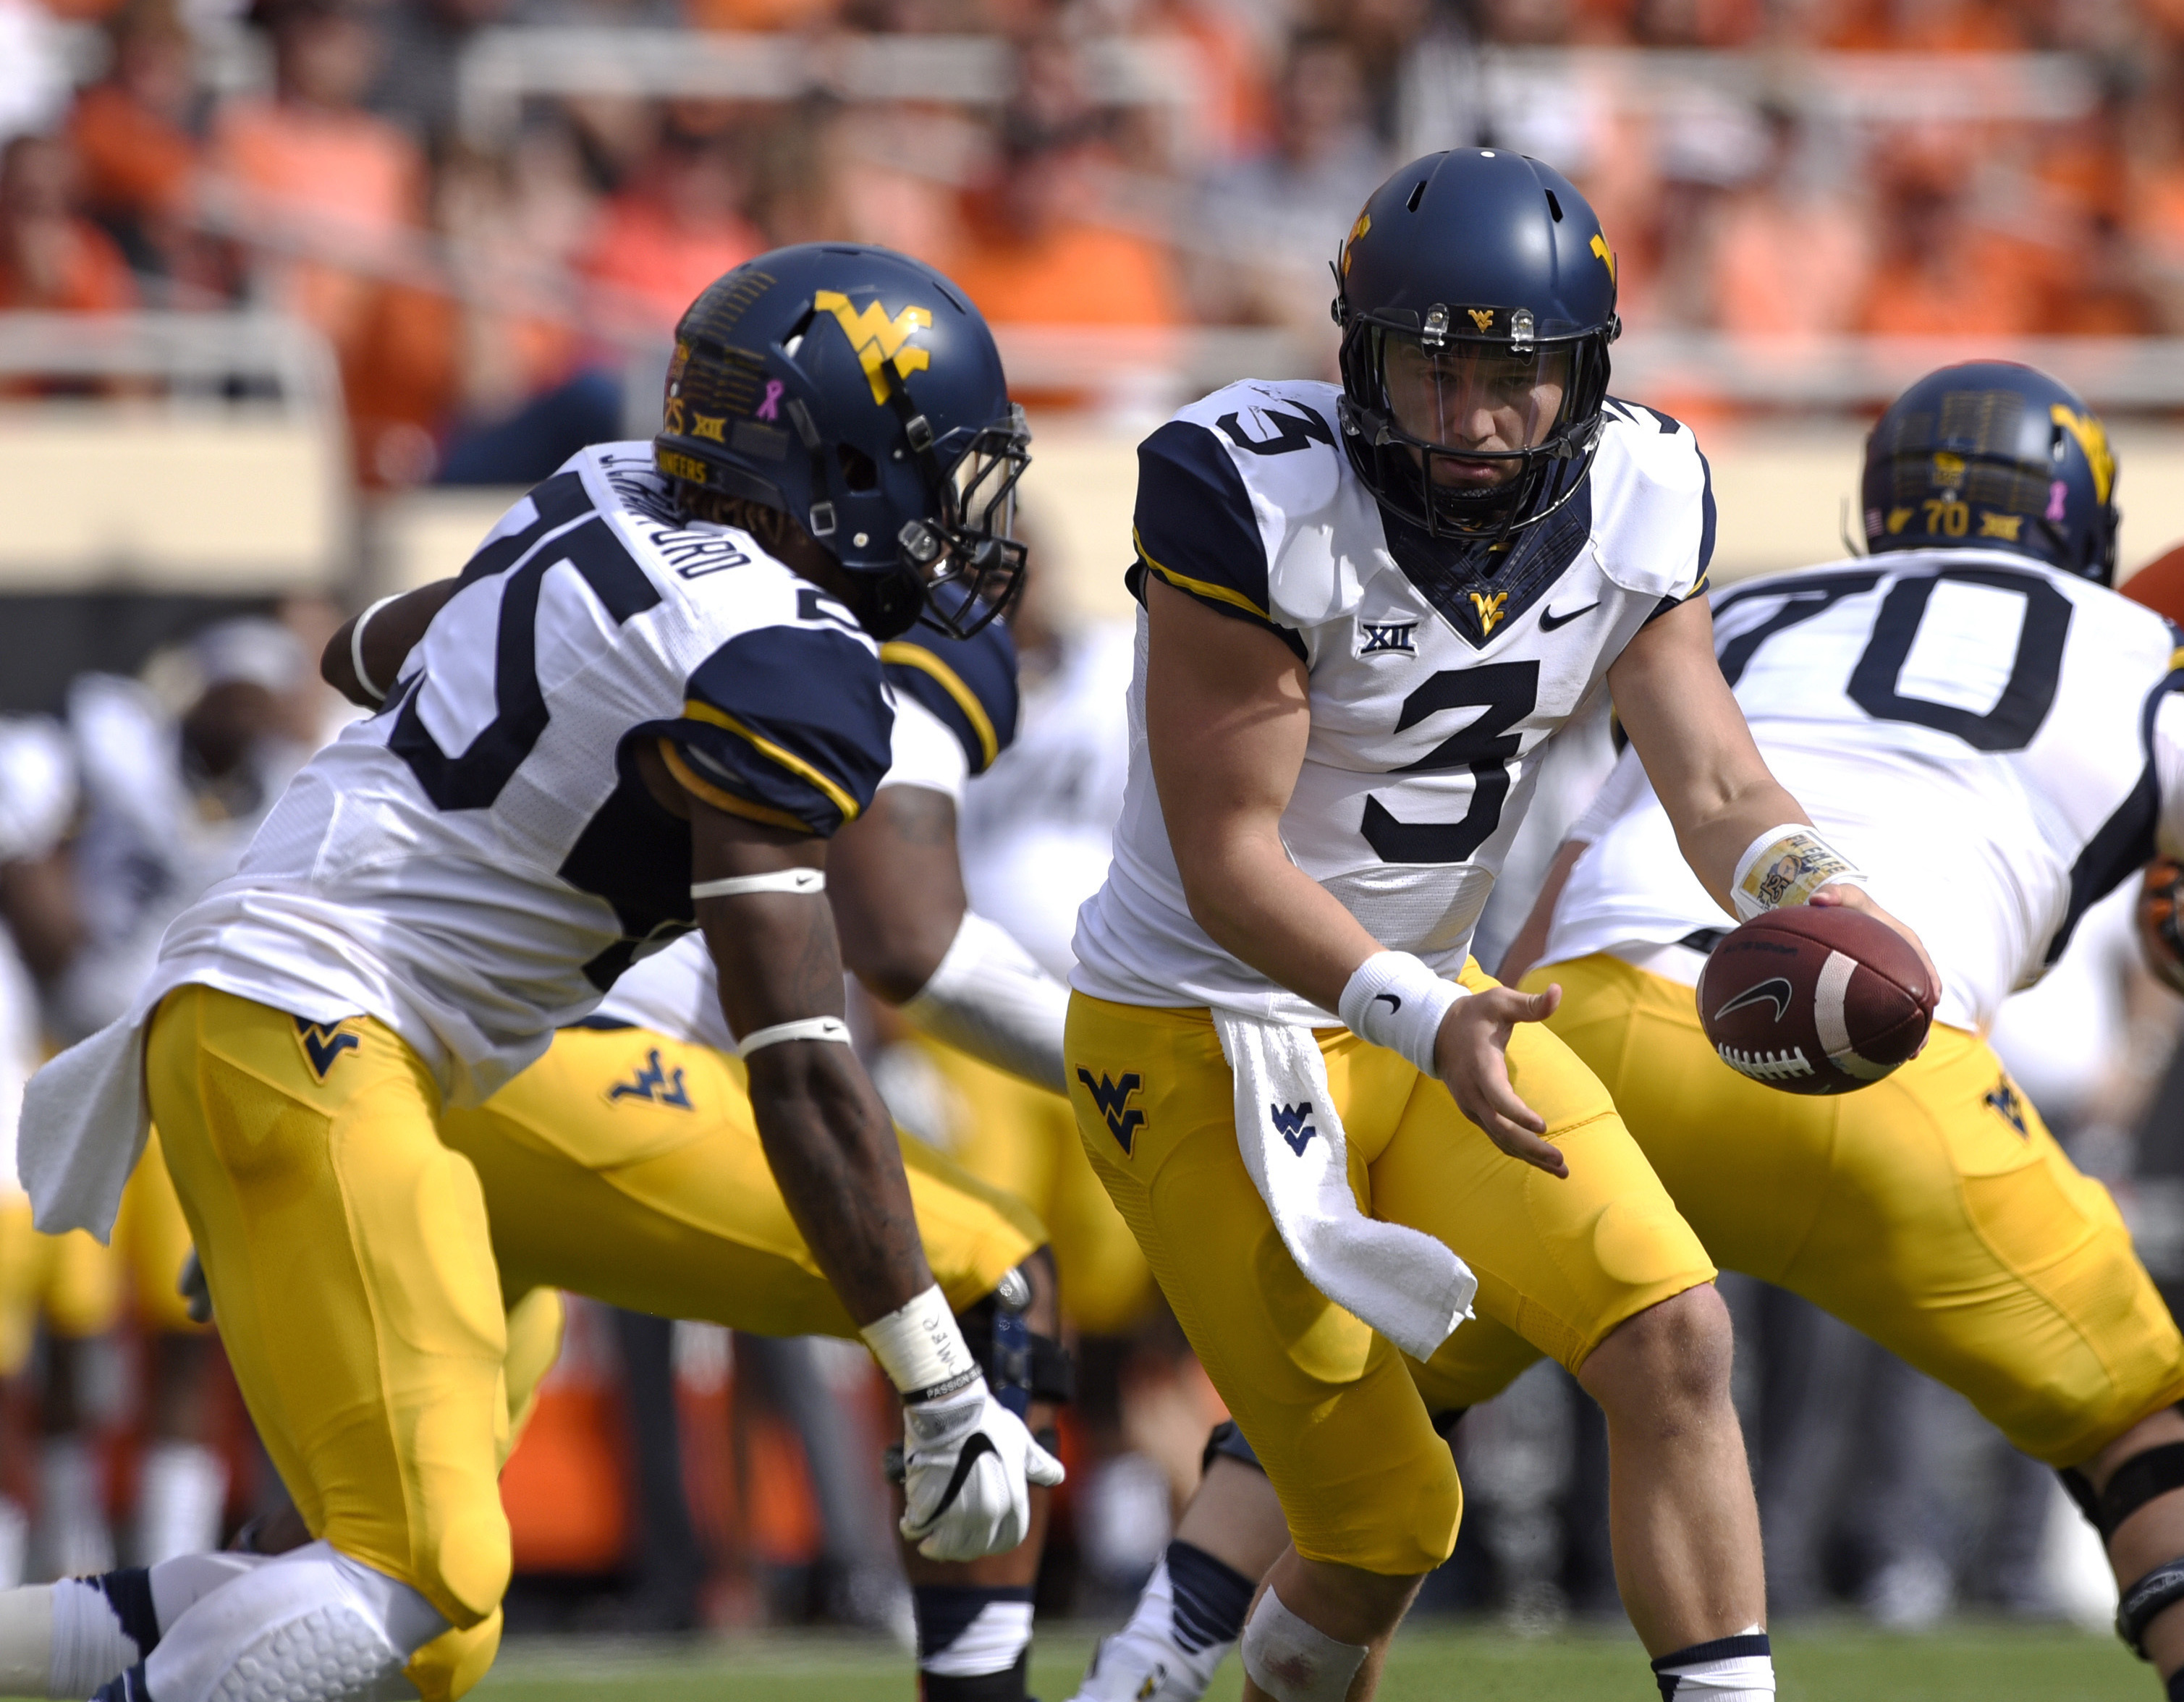 FILE - In this Oct. 29, 2016, file photo, West Virginia quarterback Skyler Howard (3) hands off to running back Justin Crawford during the team's NCAA college football game against Oklahoma State in Stillwater, Okla. West Virginia travels to play Texas th